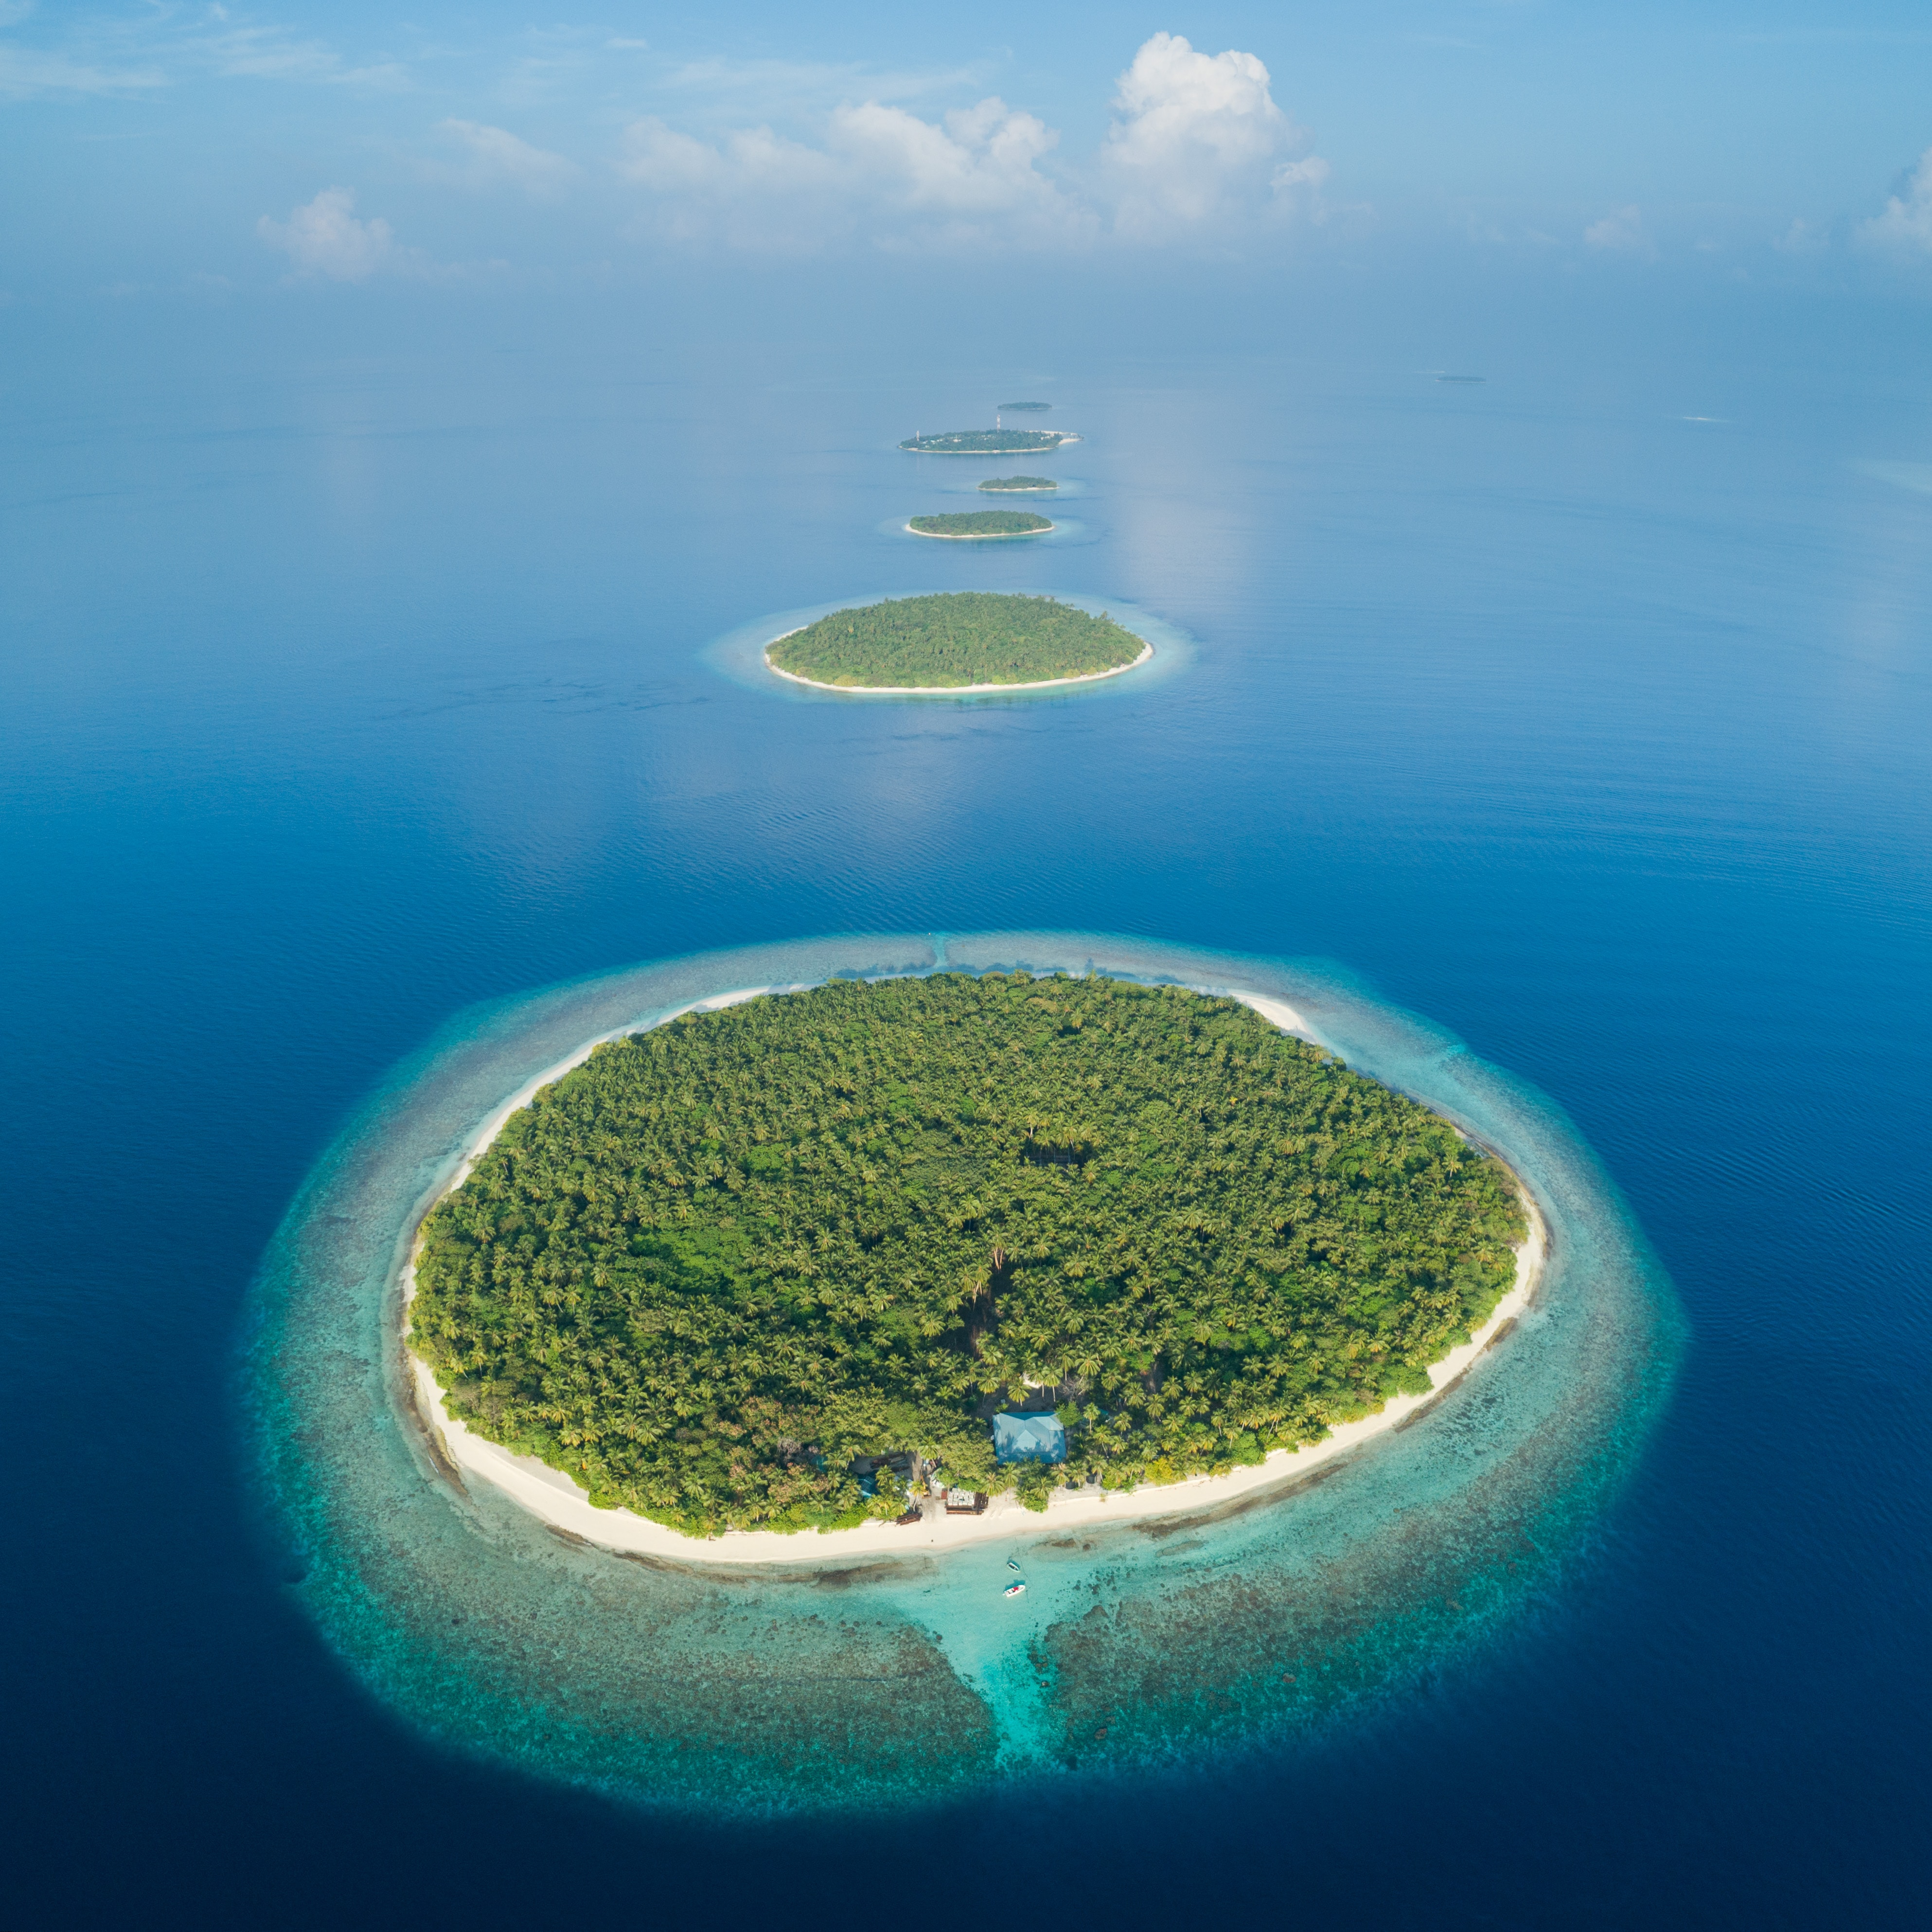 134115 download wallpaper Nature, Islands, Ocean, View From Above, Tropics, Maldives screensavers and pictures for free